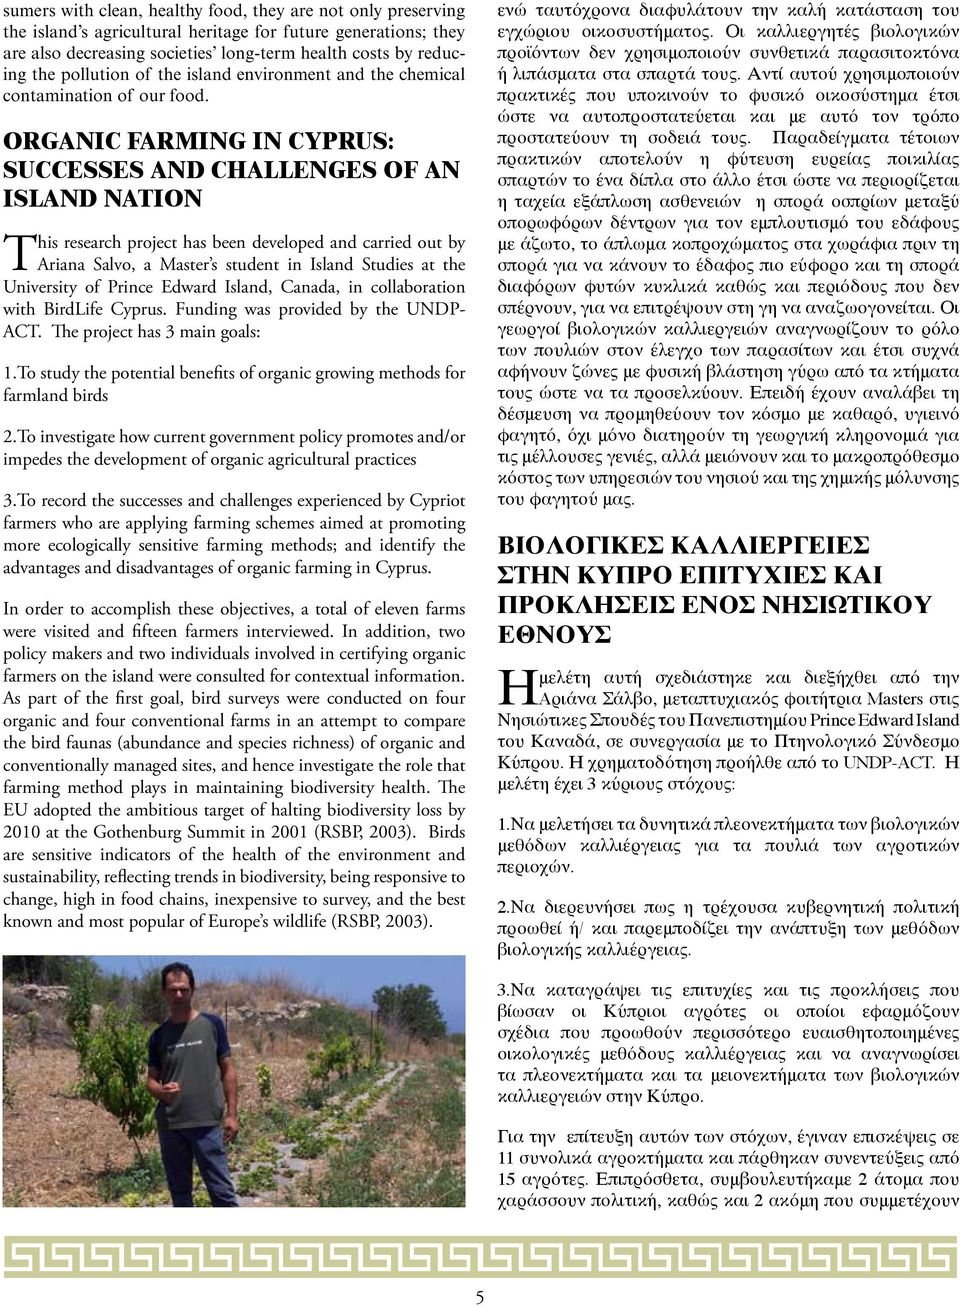 ORGANIC FARMING IN CYPRUS: SUCCESSES AND CHALLENGES OF AN ISLAND NATION This research project has been developed and carried out by Ariana Salvo, a Master s student in Island Studies at the